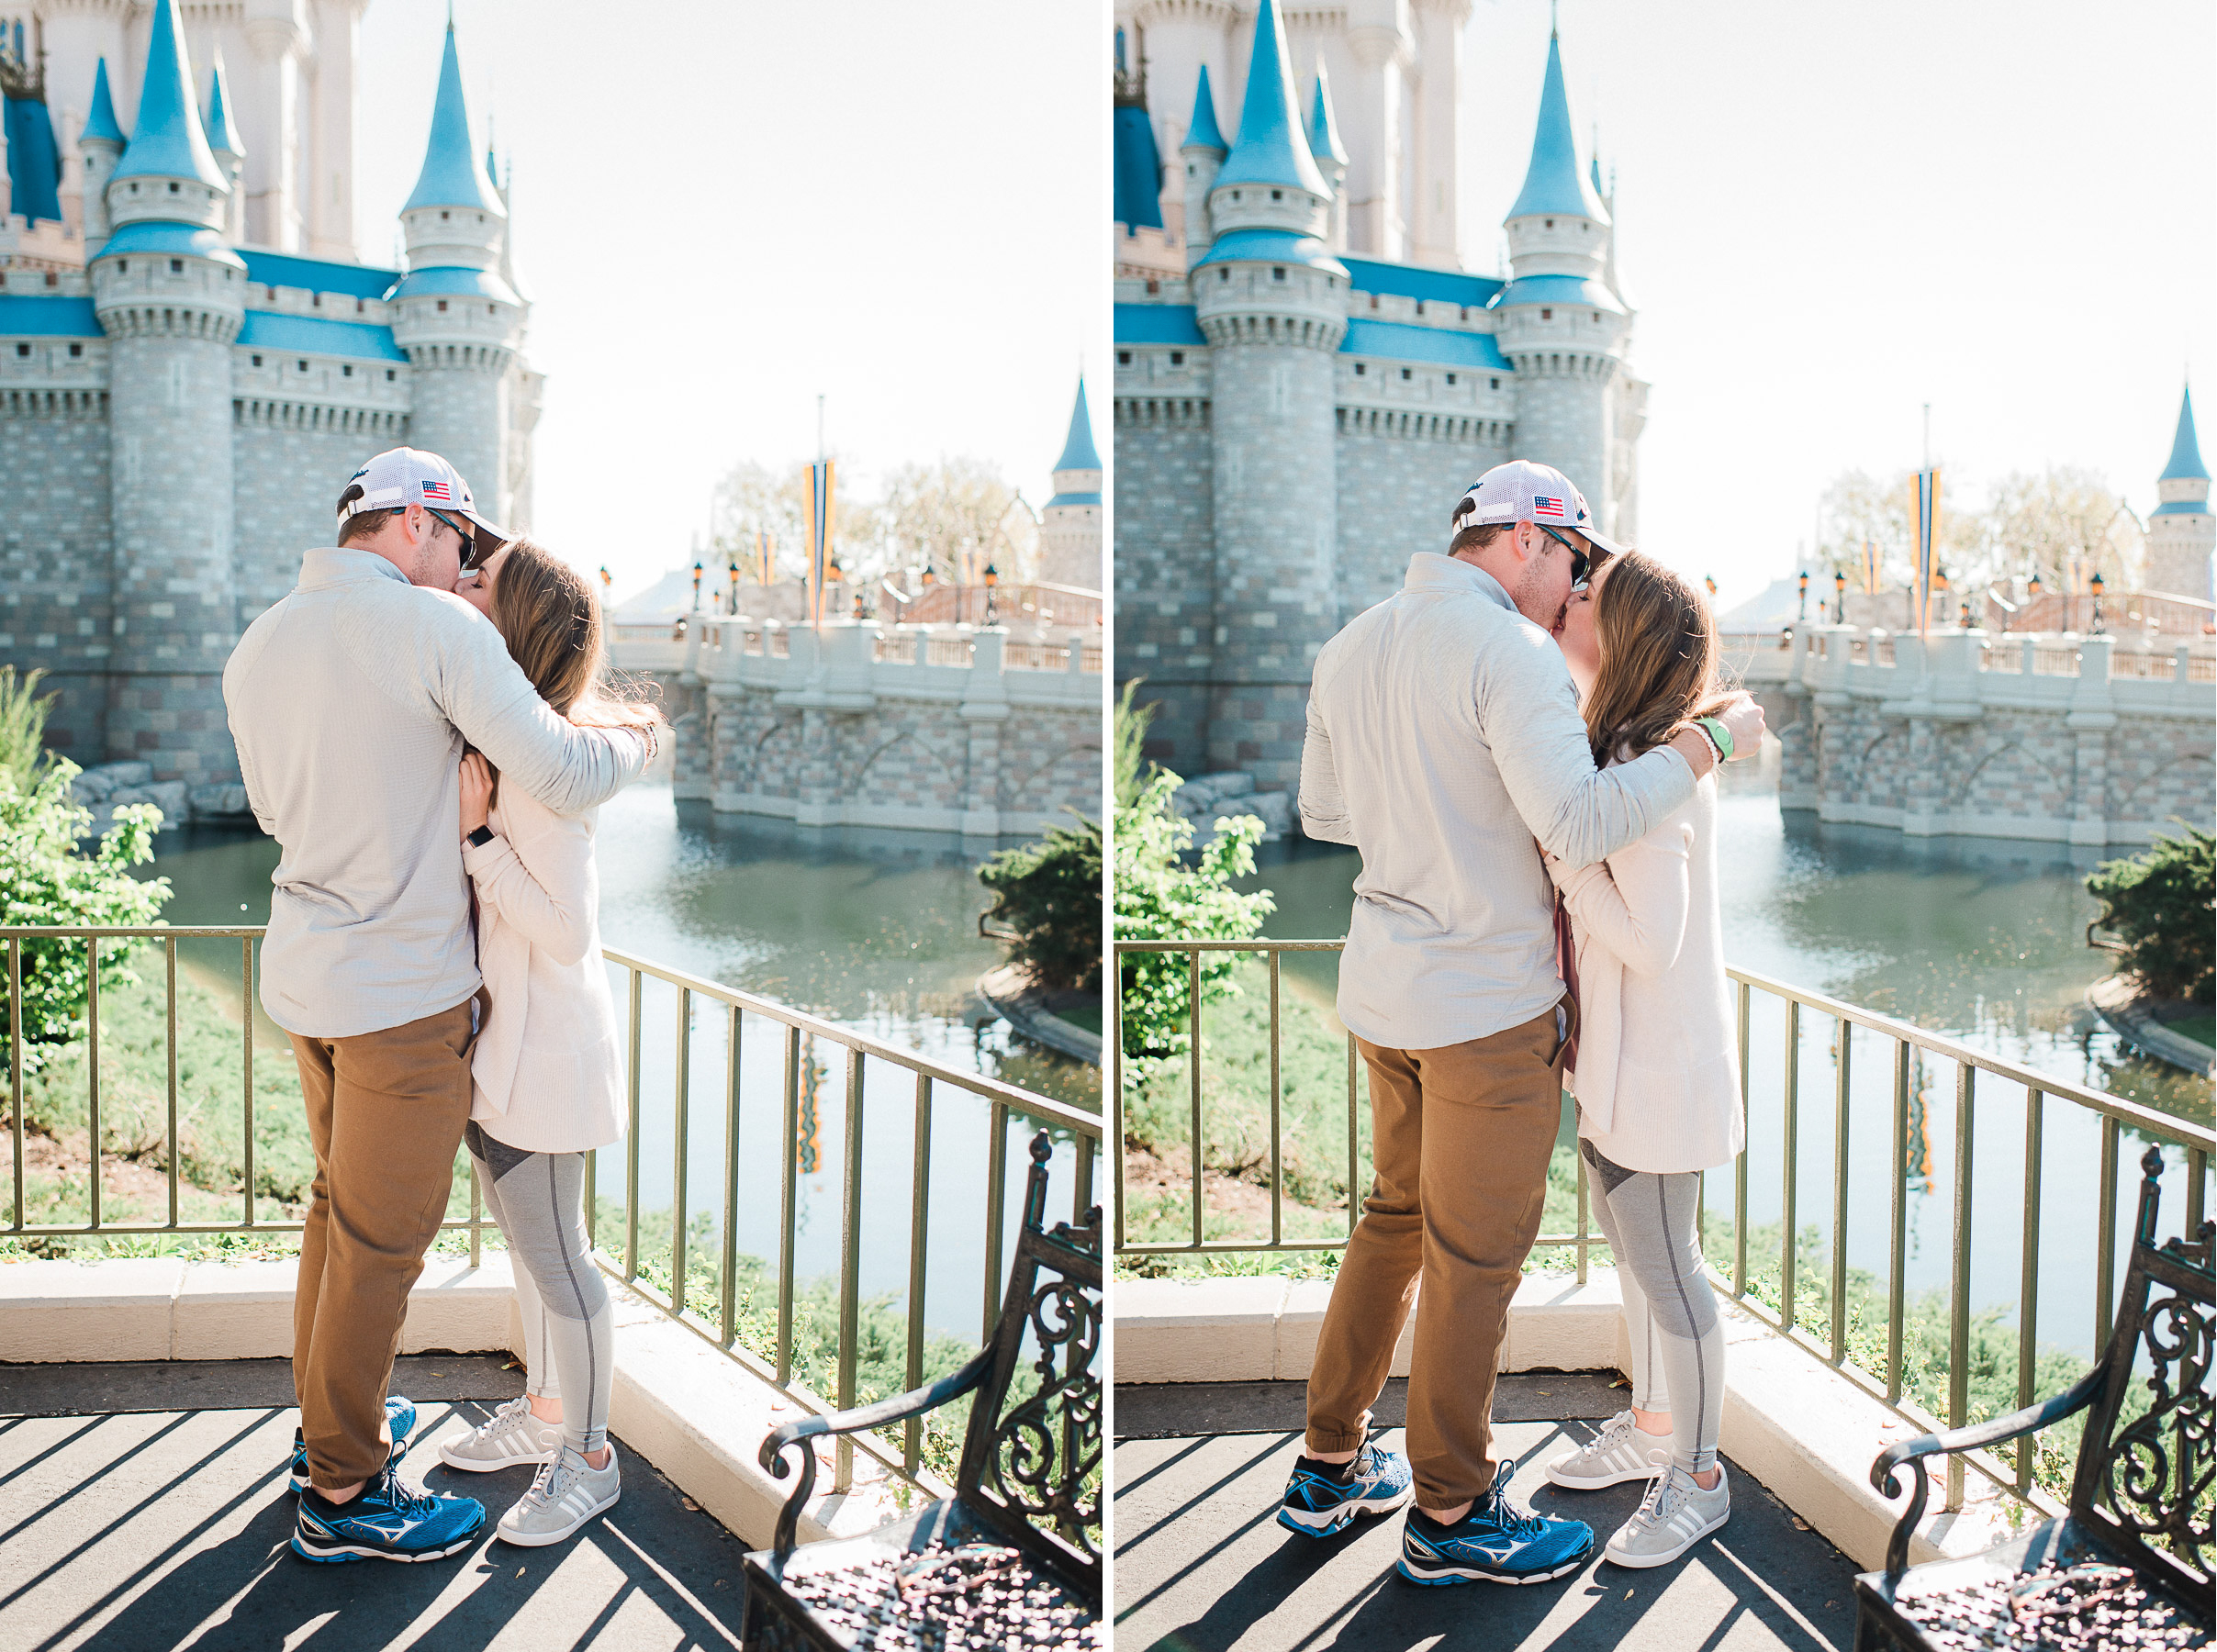 KateTaramykinStudios-Disney-World-Proposal-Kup-12.jpg